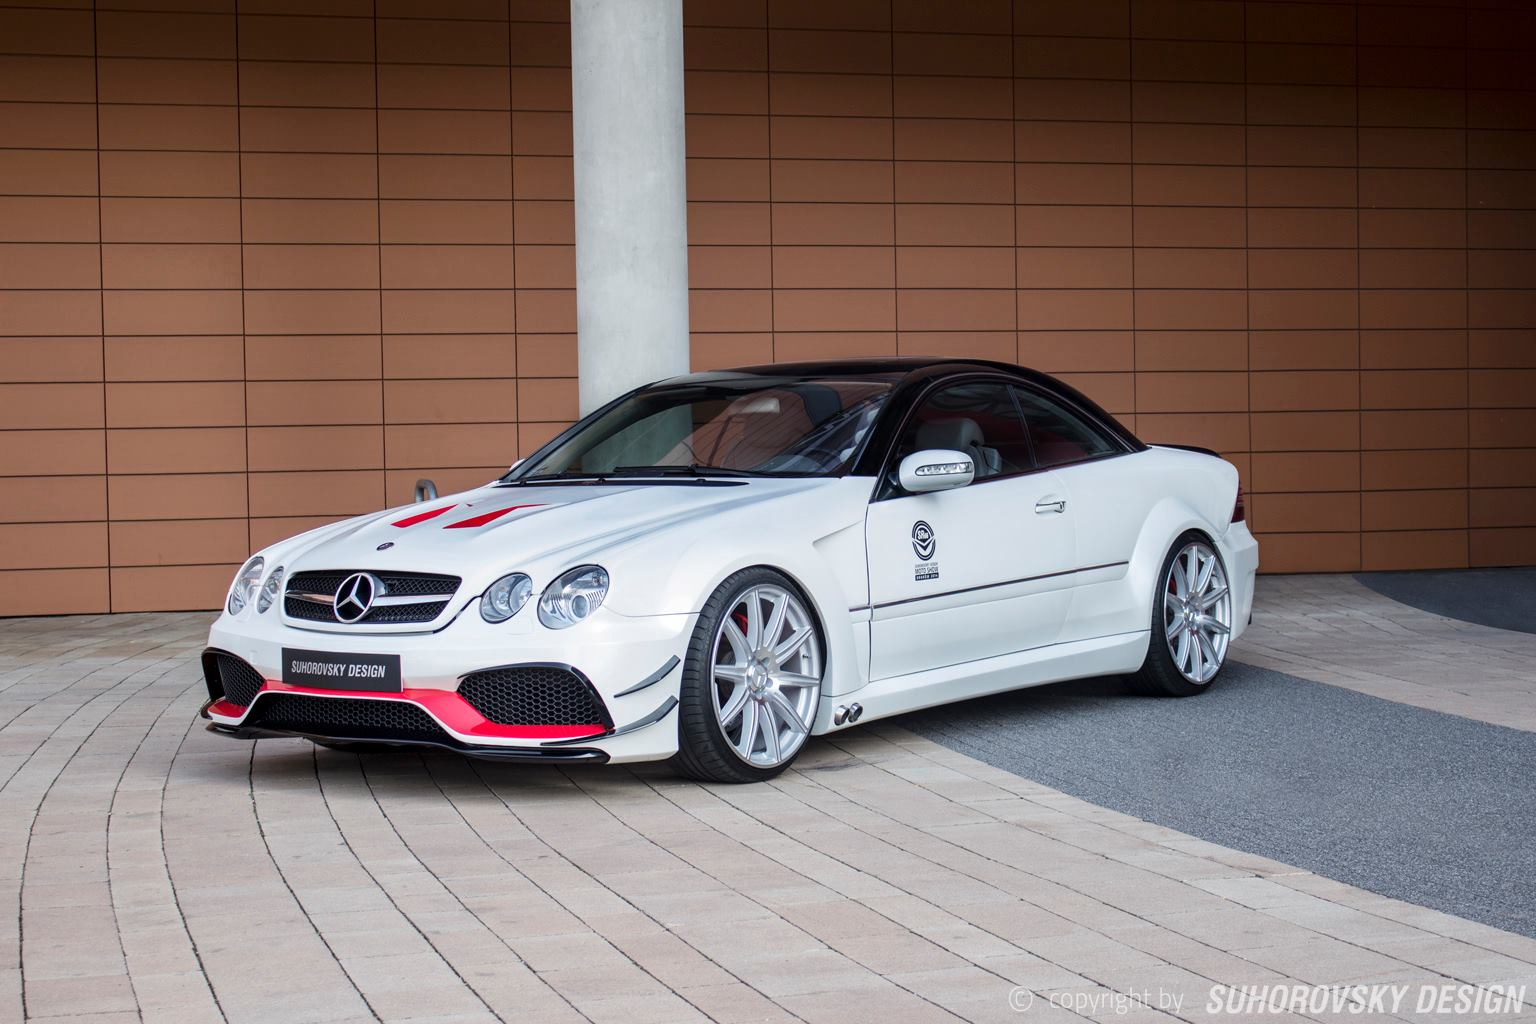 Polish Wide Body Kit Mercedes-Benz CL Features Side Exhausts